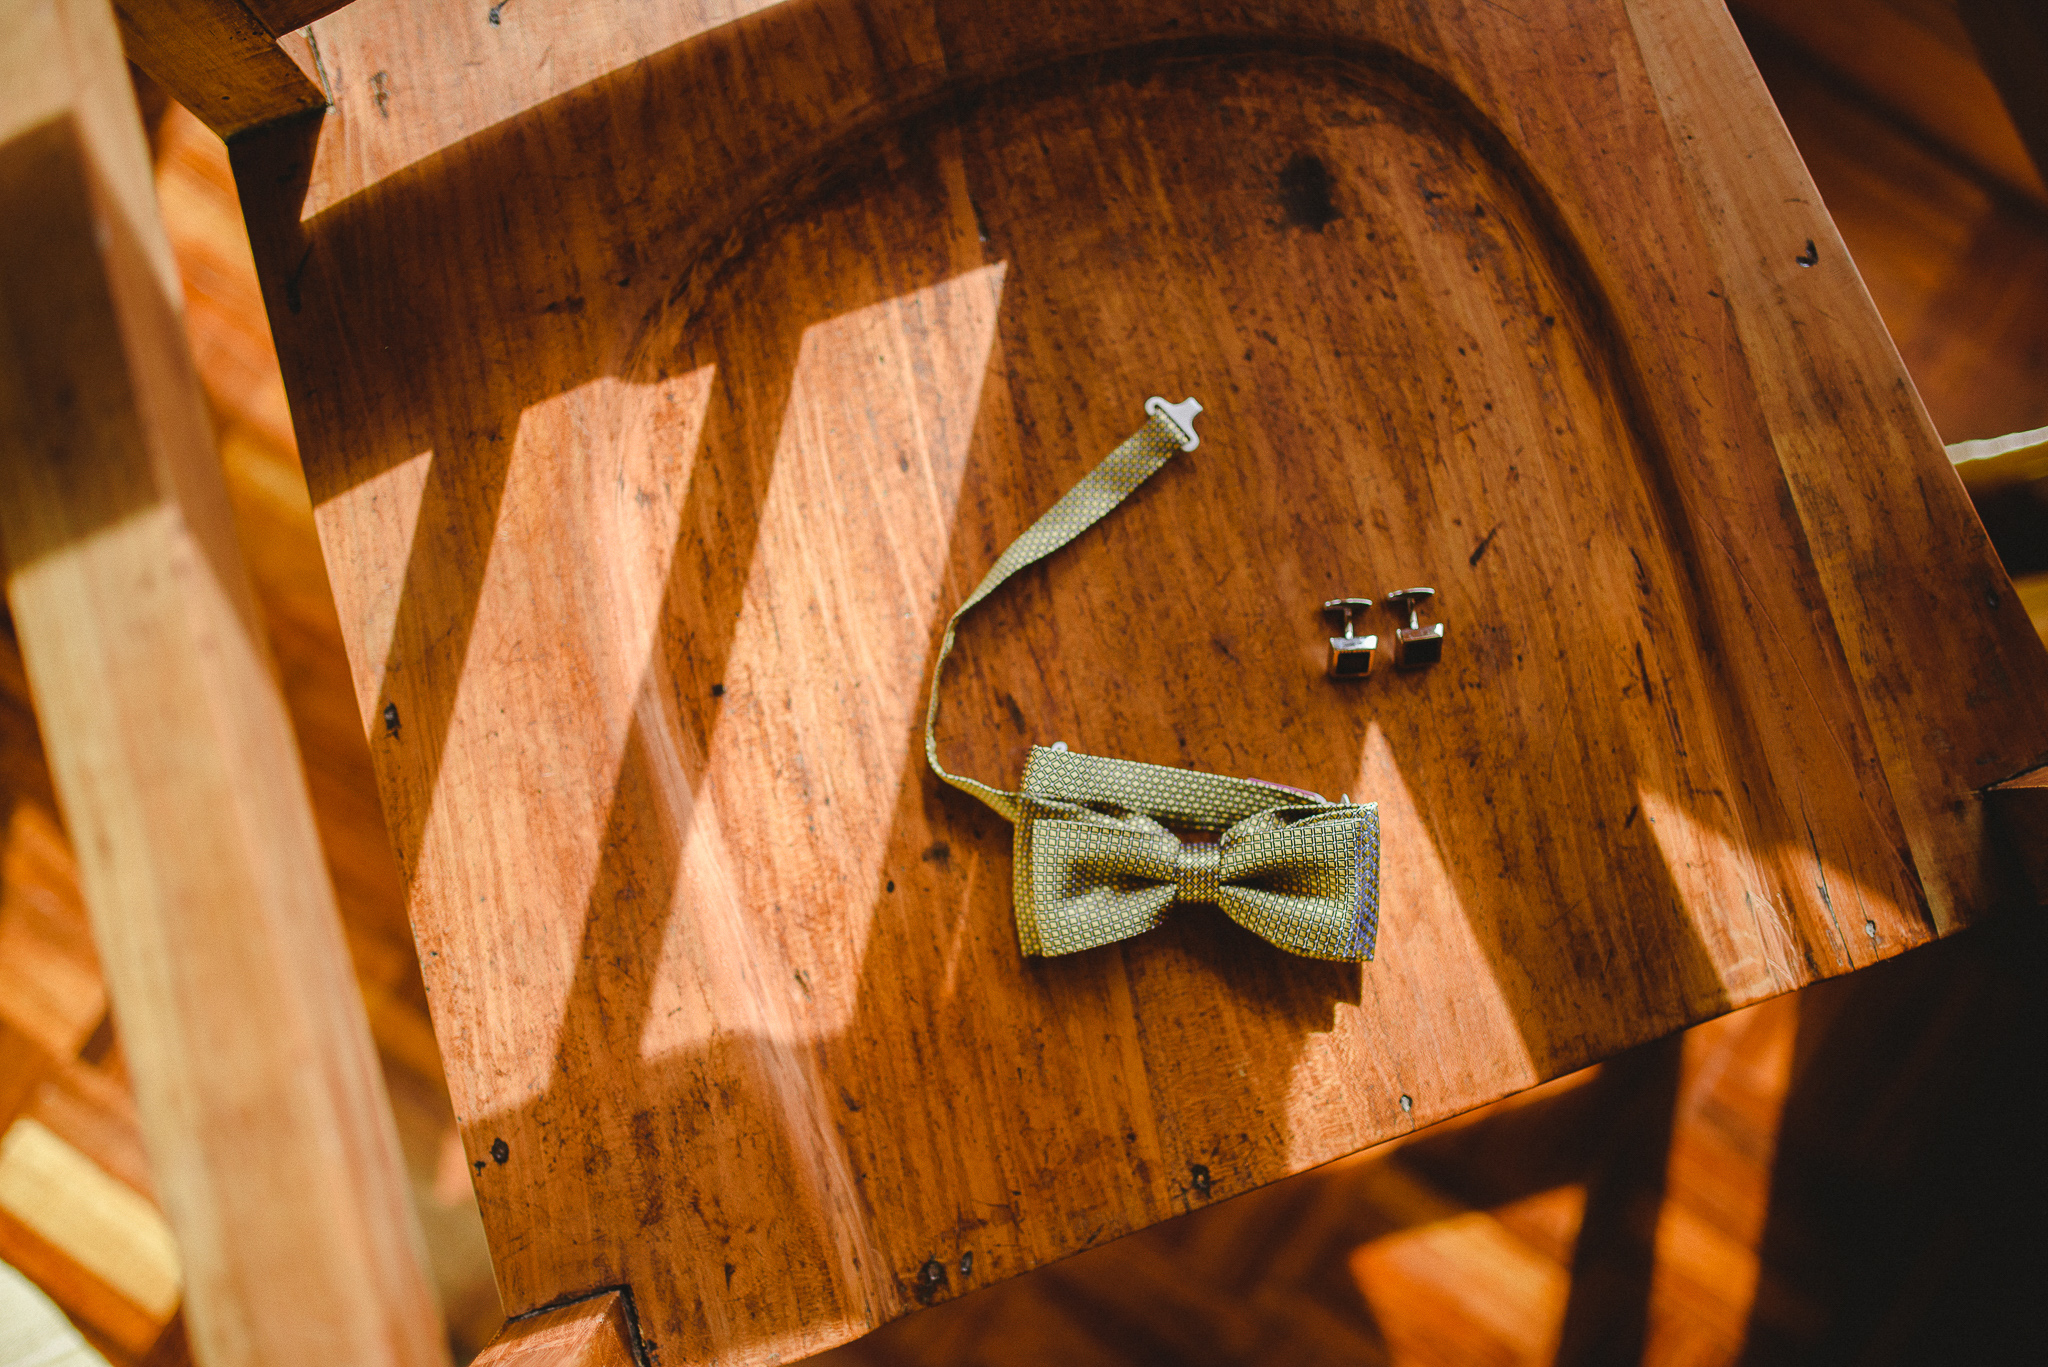 Groom's bowtie displayed on a chair while he gets ready